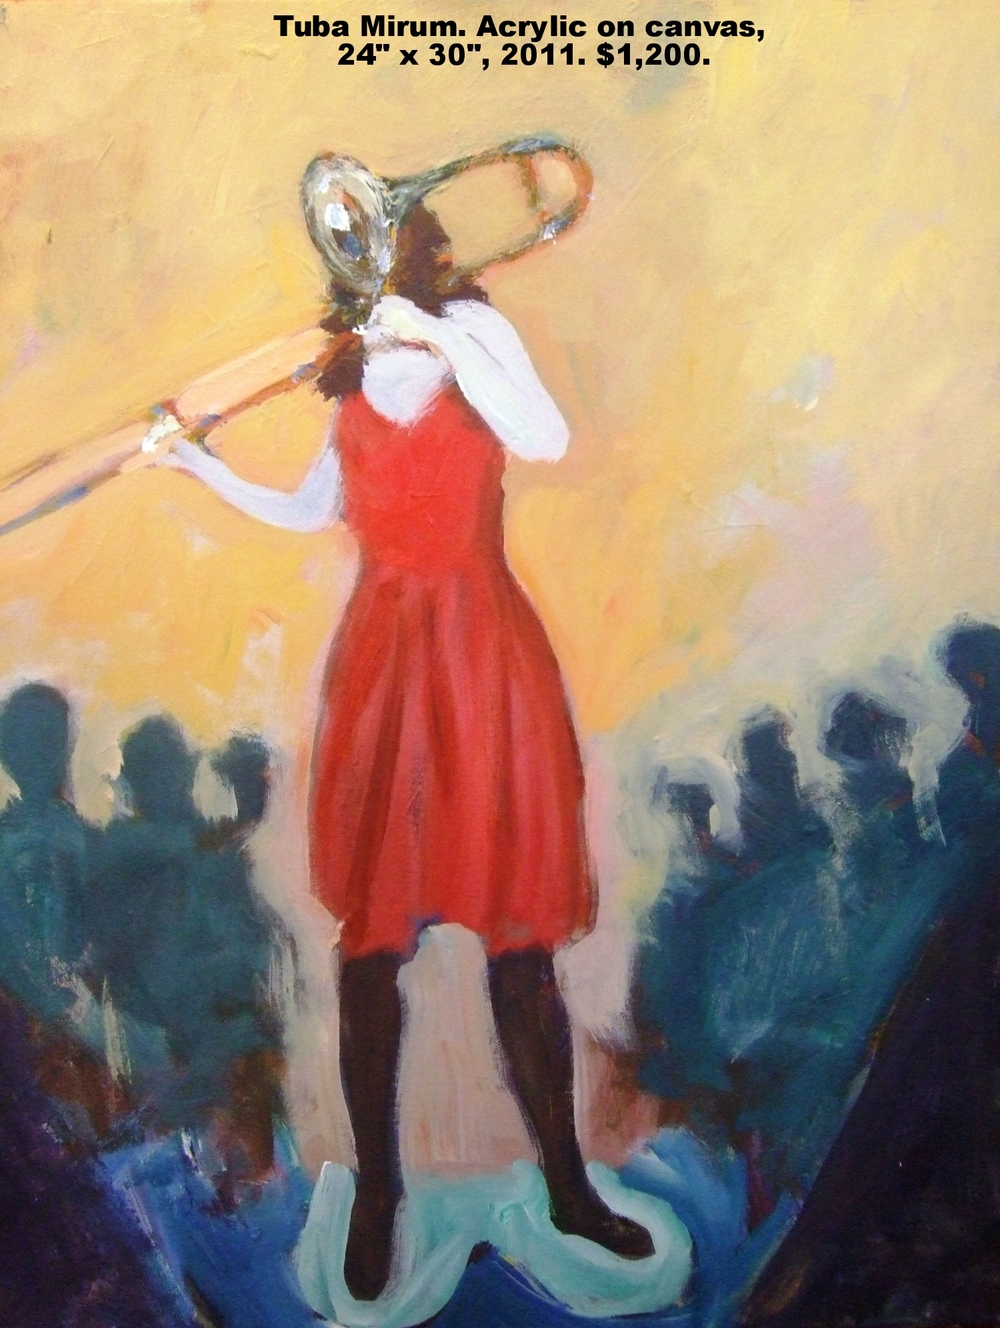 Fred Wise Tuba Mirum, acrylic on canvas, 24 x 30, 2011, $1,200.jpg